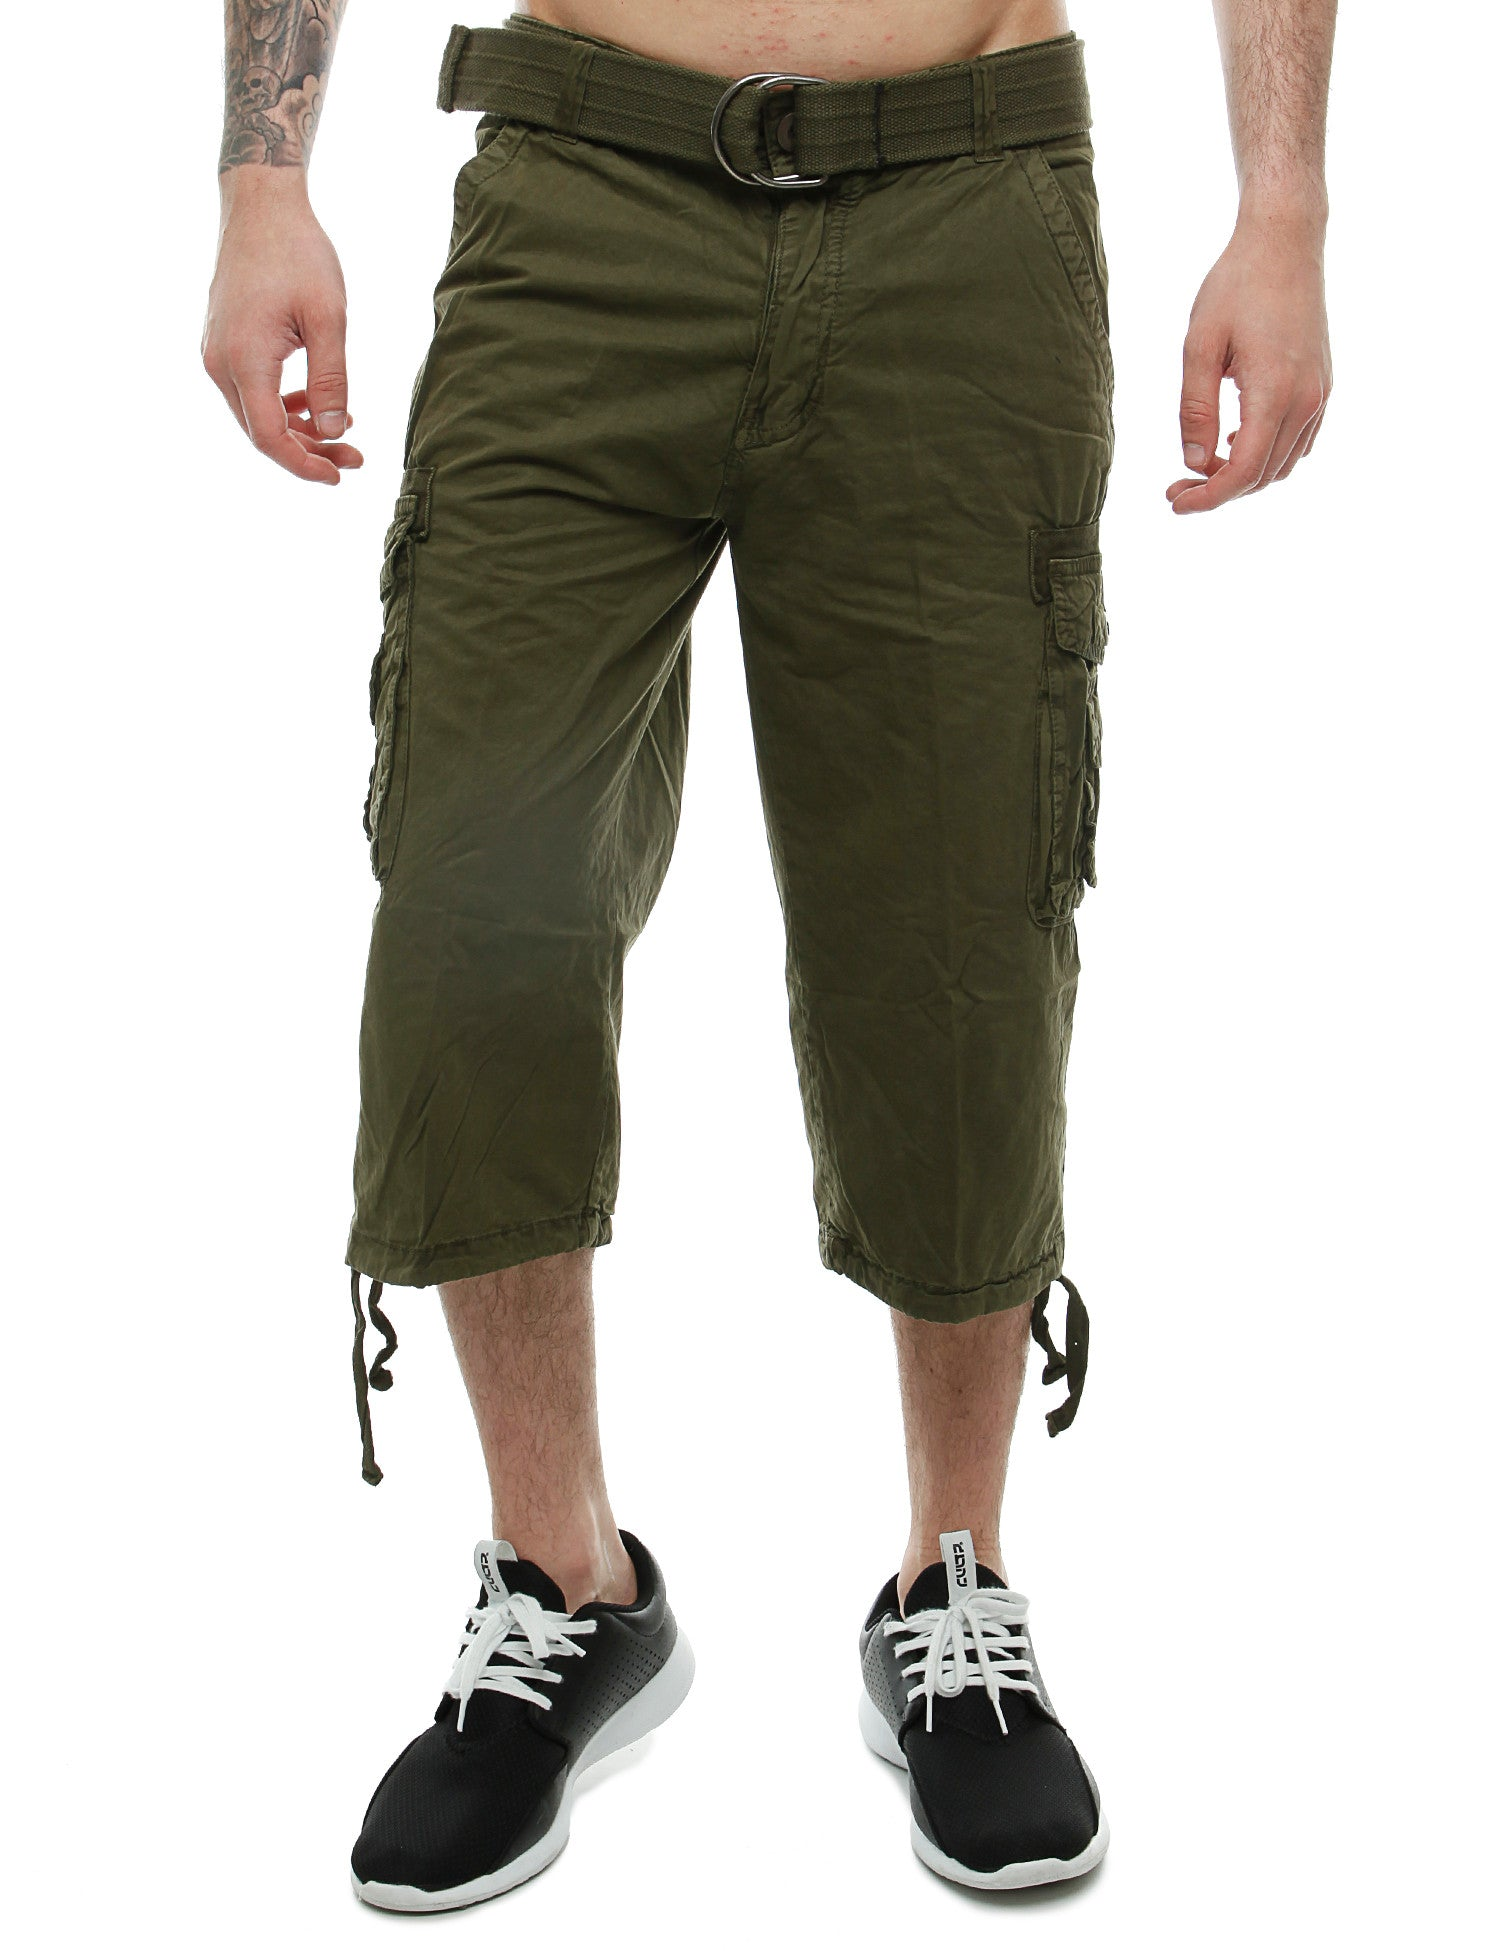 Korex Shorts CBC731 Olive Green